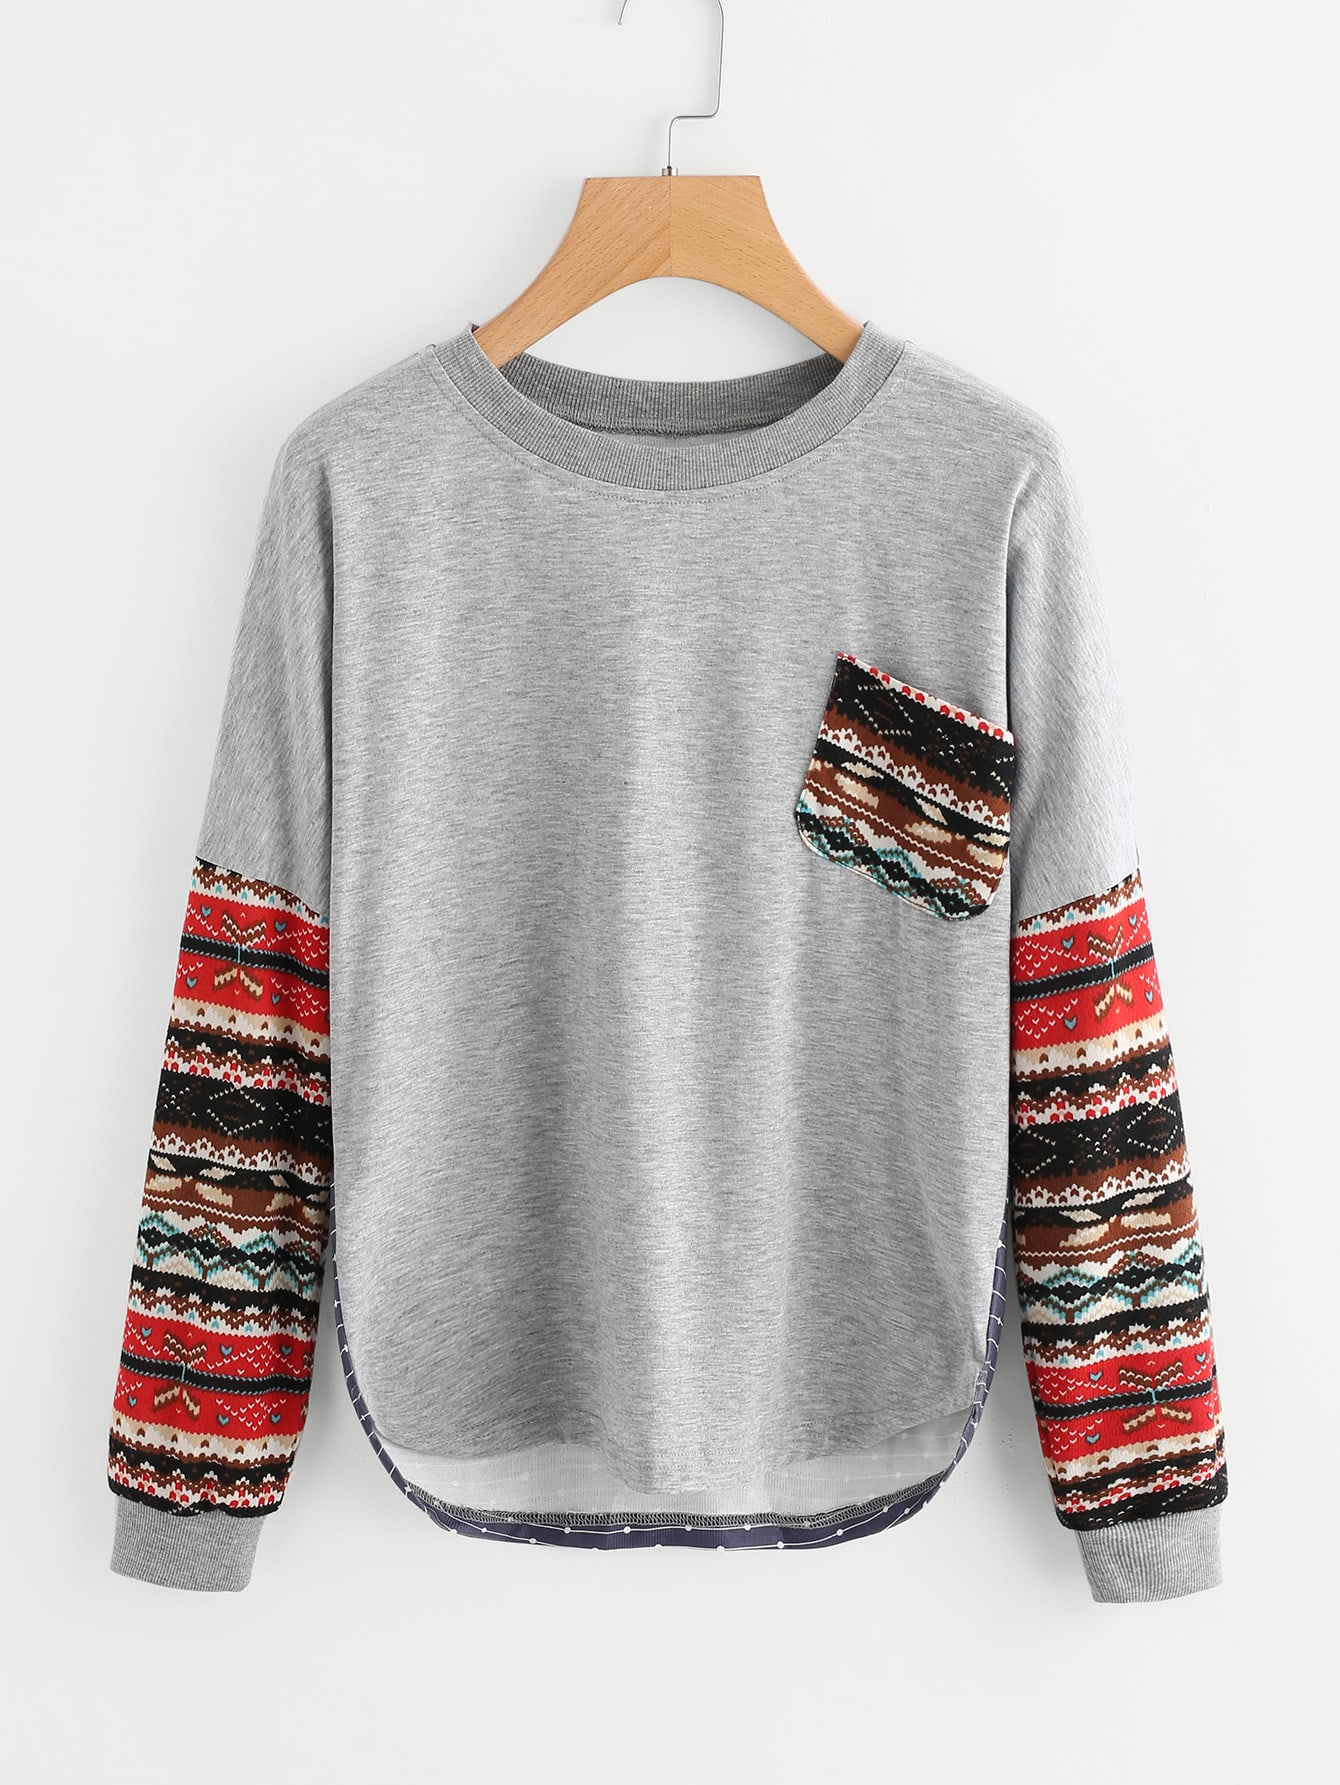 Contrast Drop Shoulder Tribal Sleeve Tee lace contrast back drop shoulder shirt